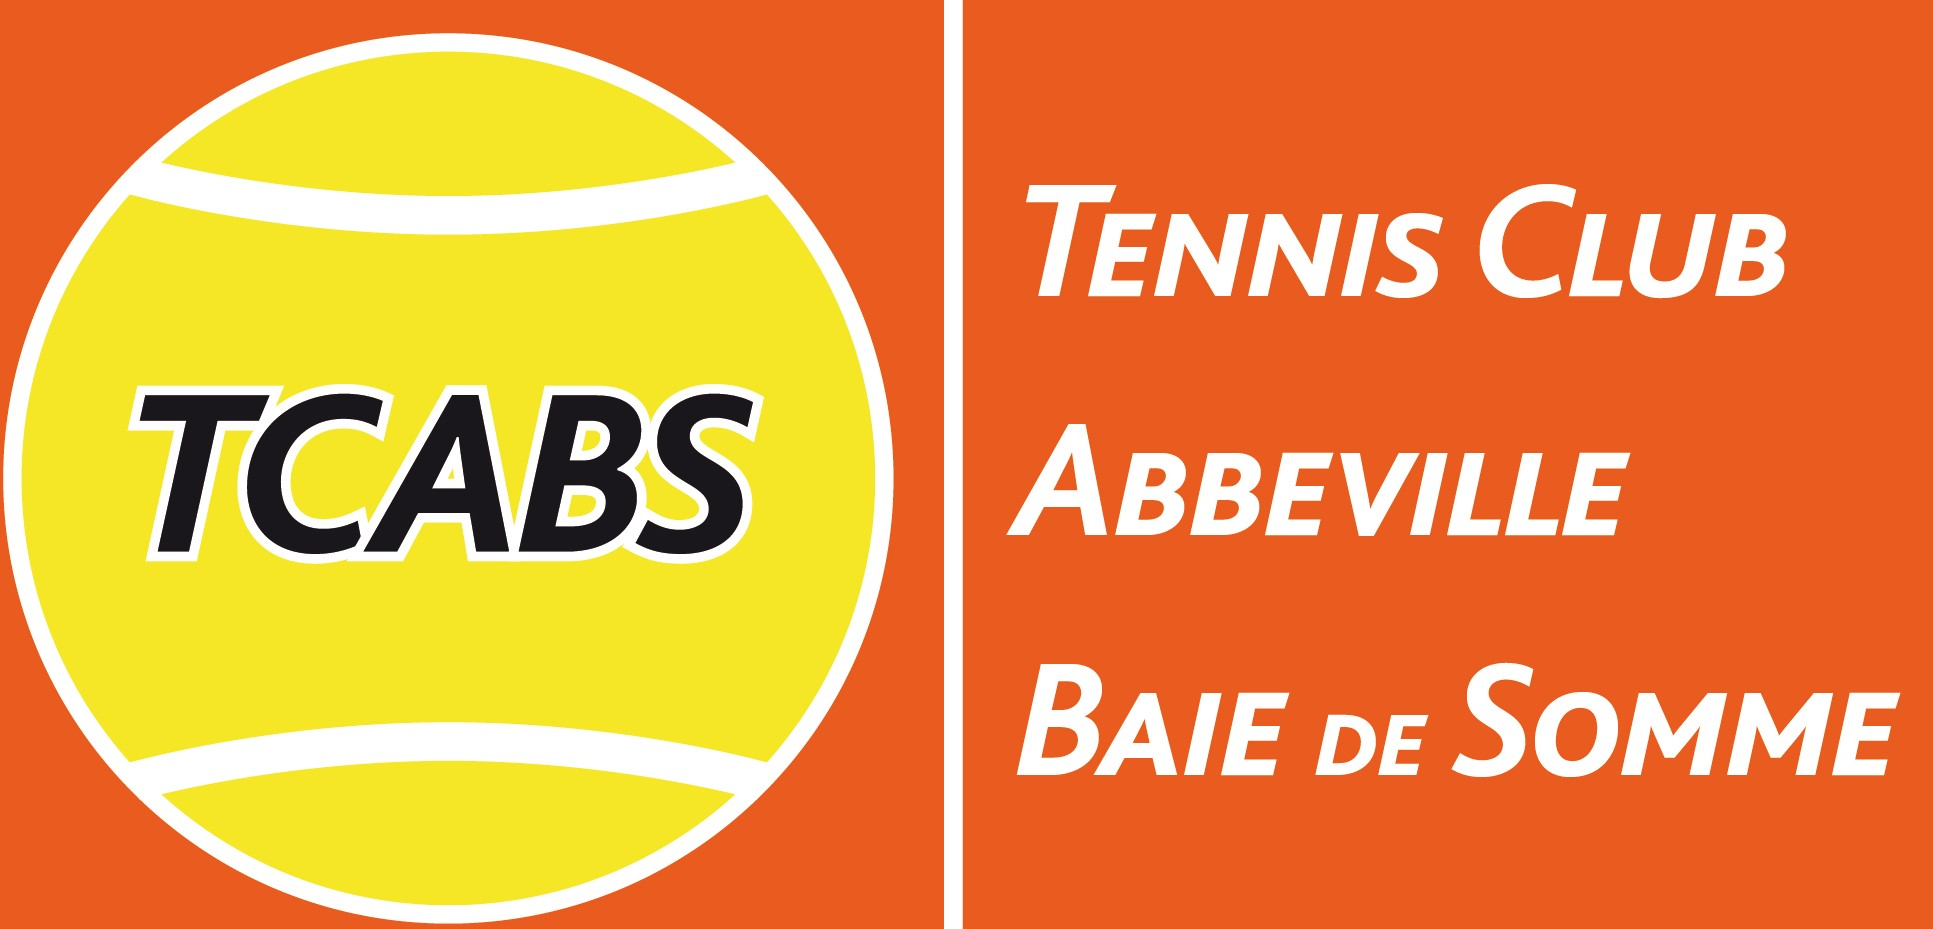 Tennis Club Abbeville Baie de Somme